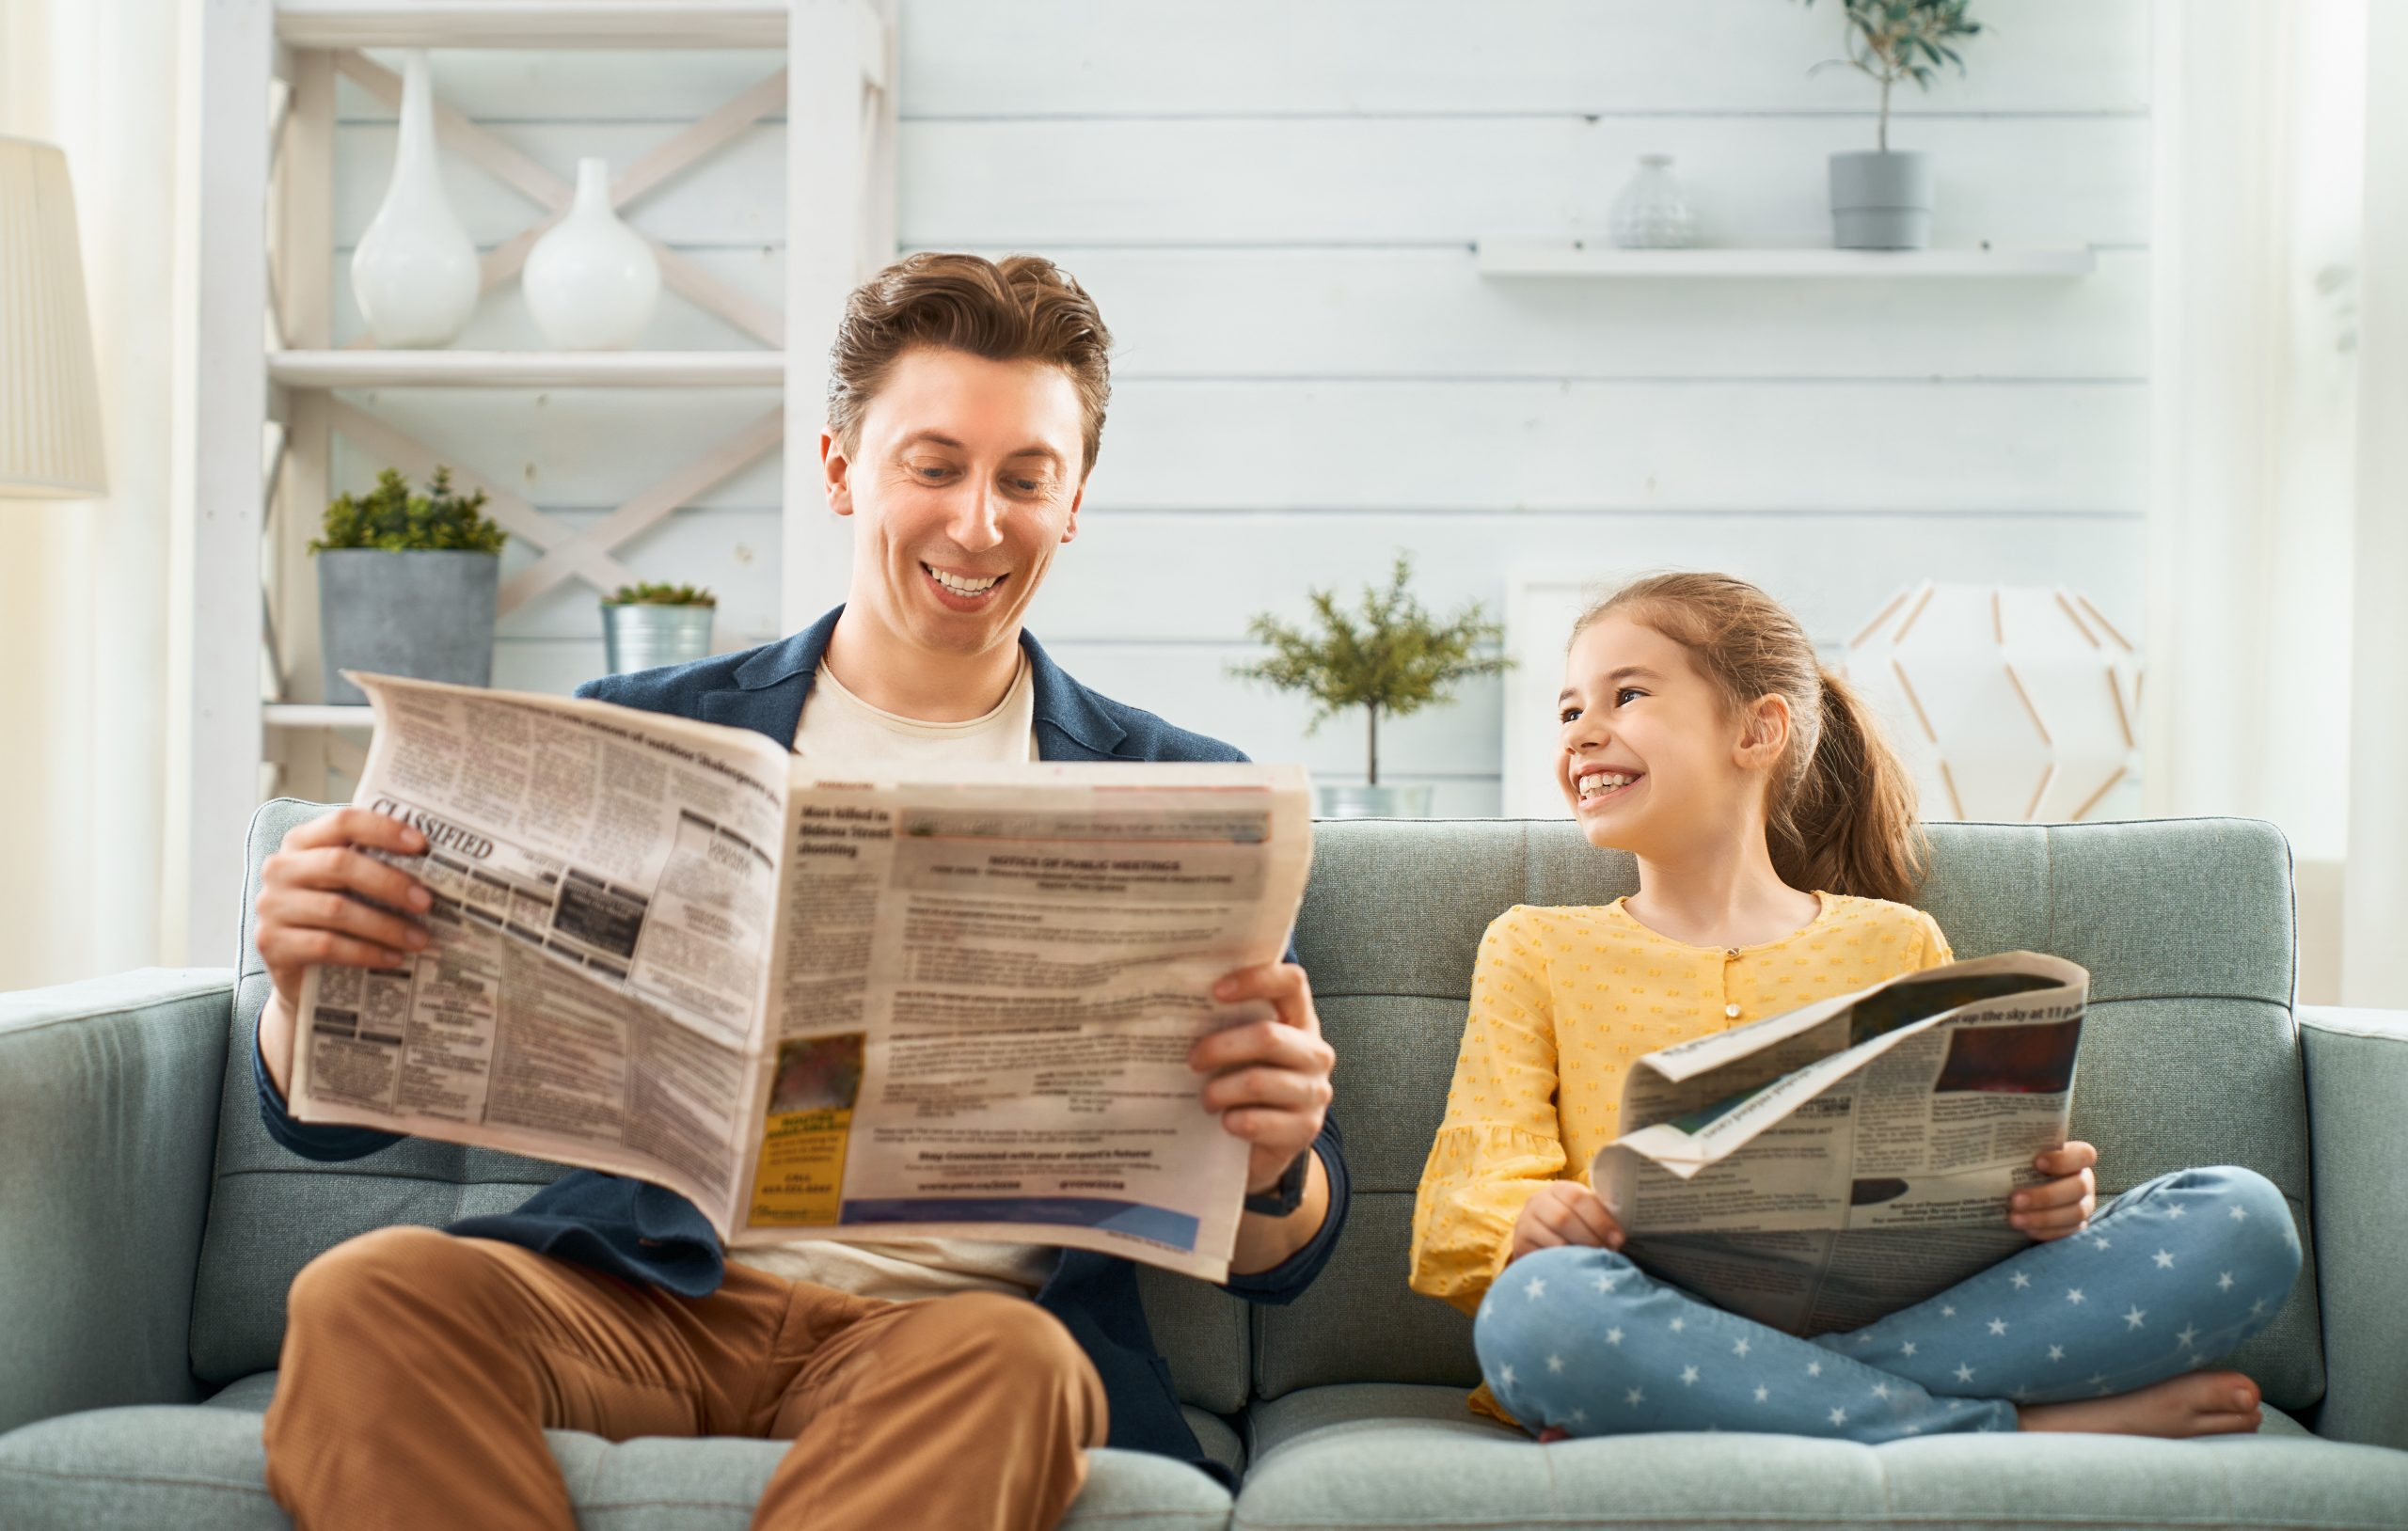 How To Gain Local Media Coverage To Attract More Leads, And Other Marketing Musts Reads